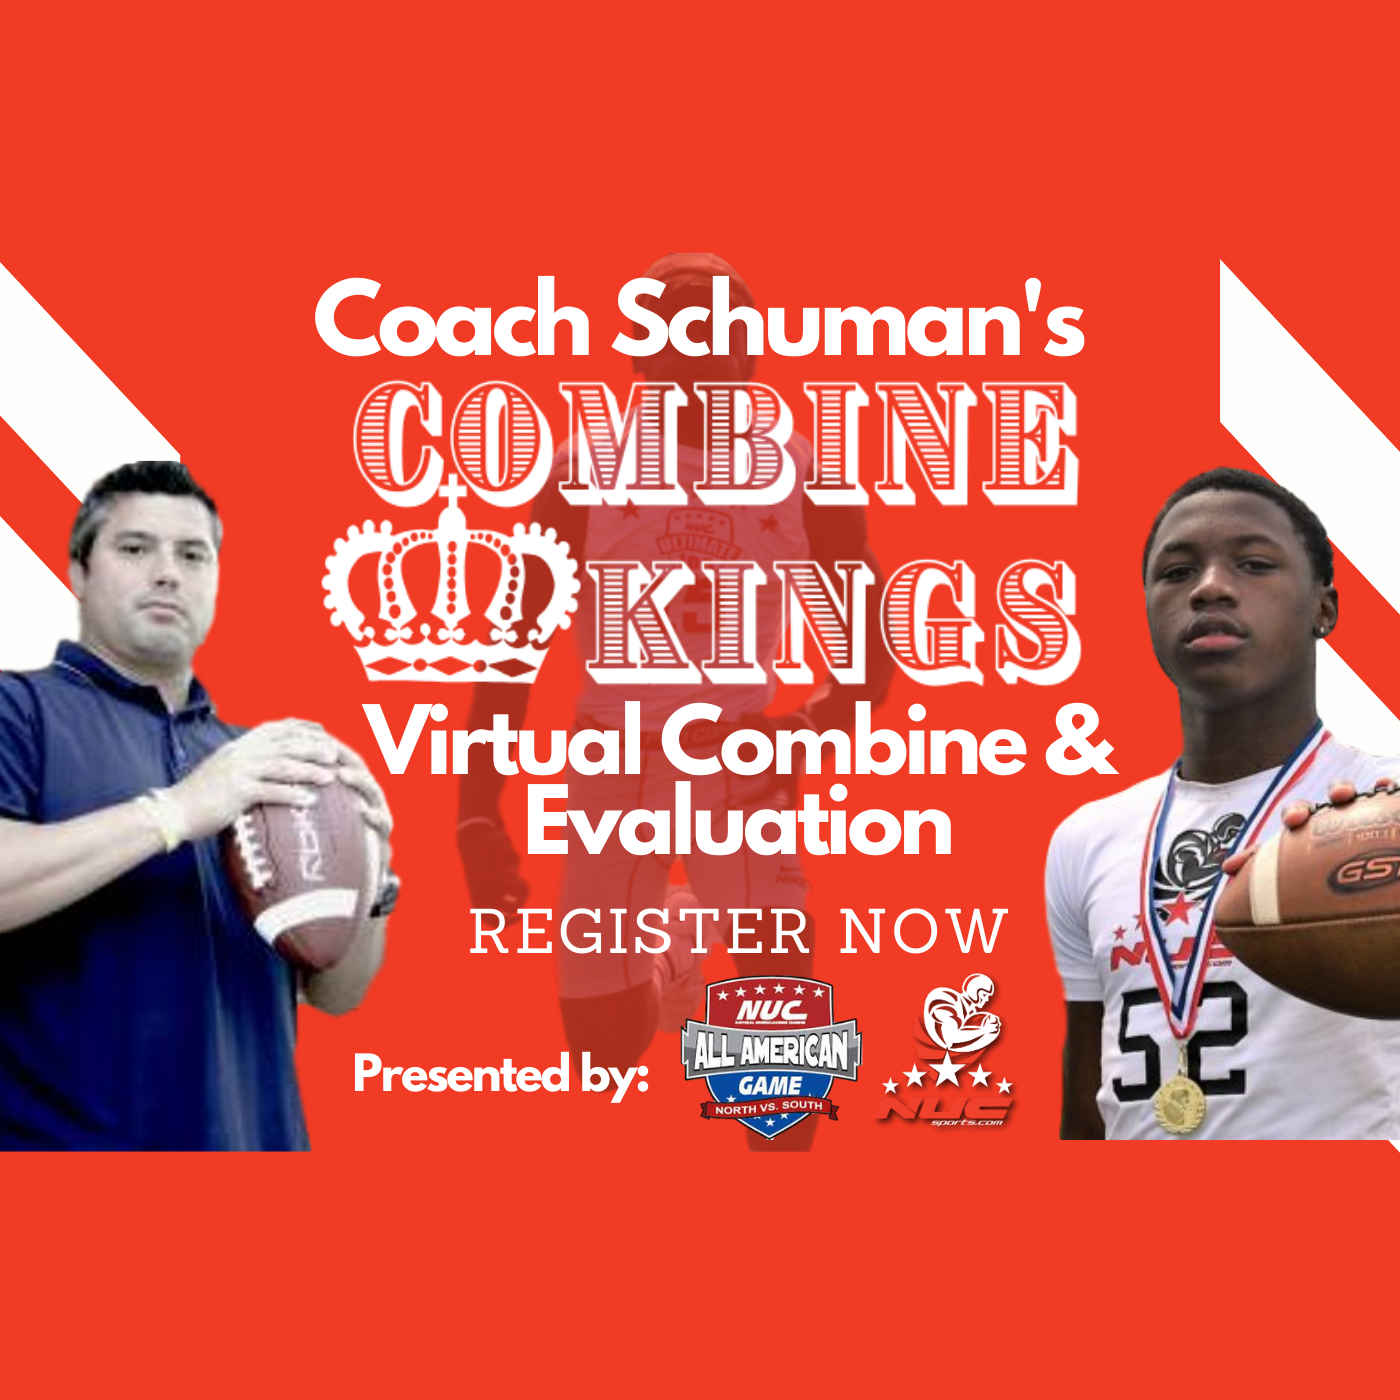 Coach Schuman's Combine Kings Virtual Combine